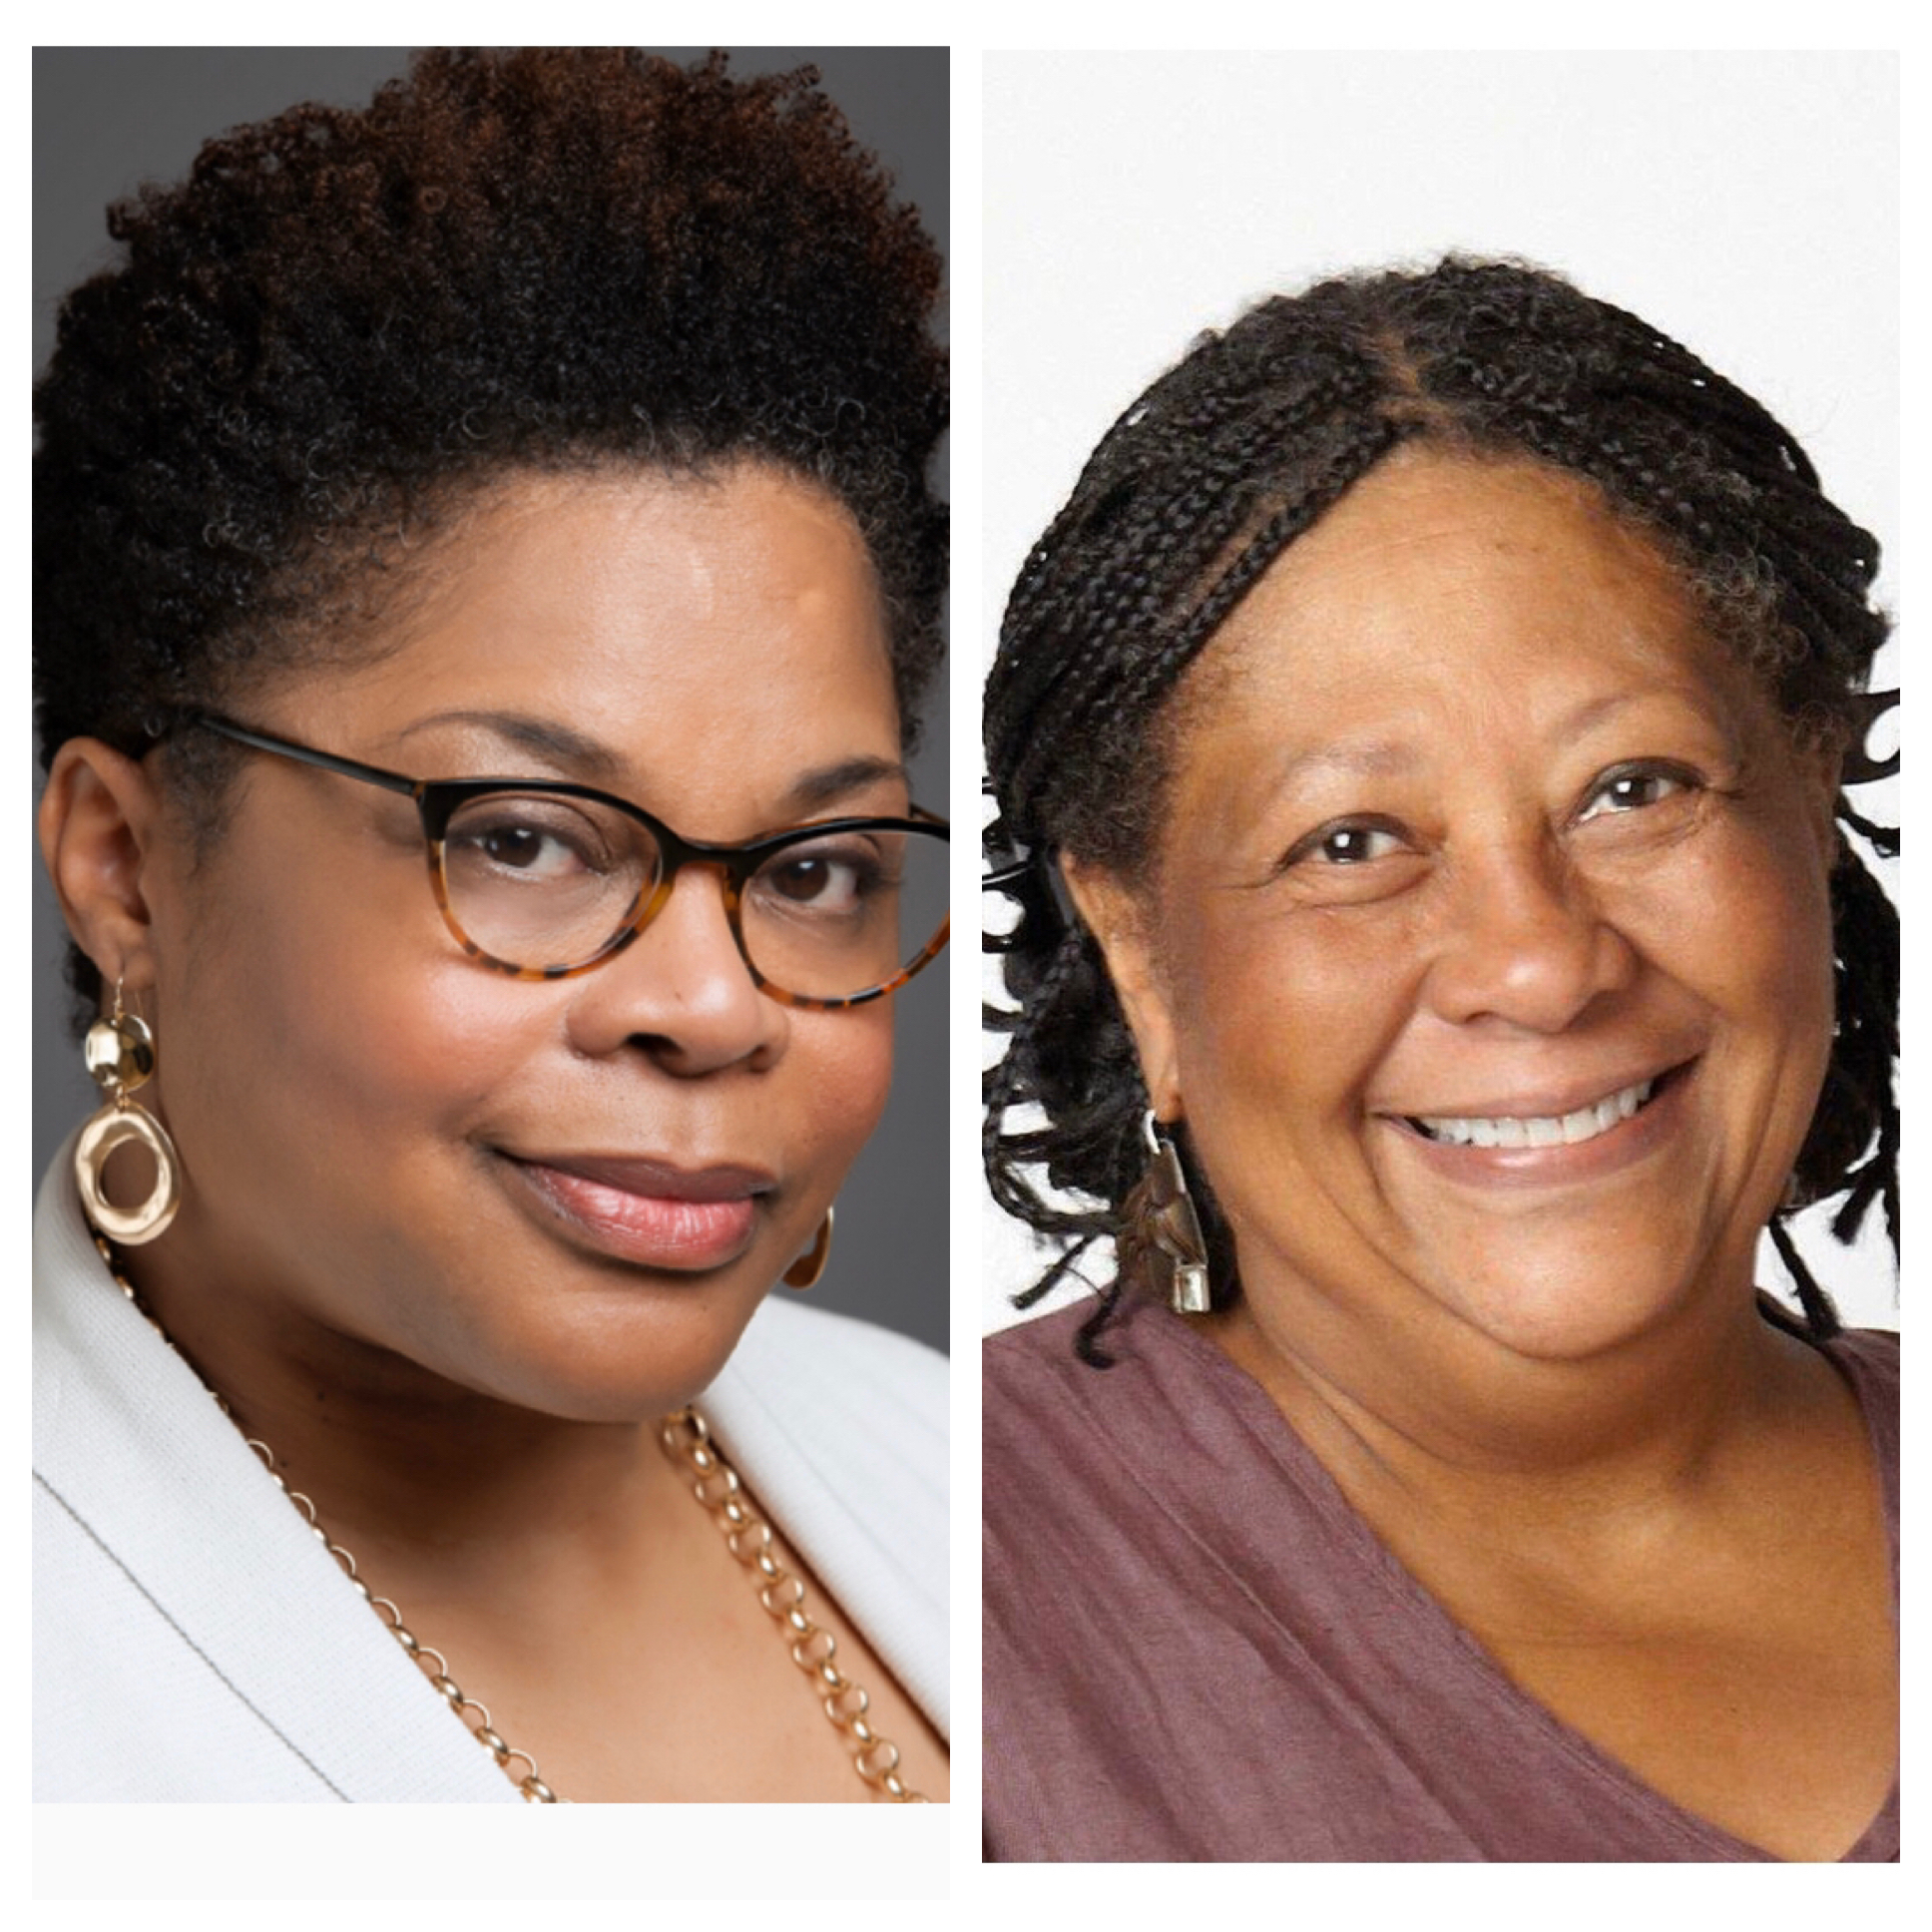 Thoughtful Thursday: Crystal Williams and Marilyn Nelson